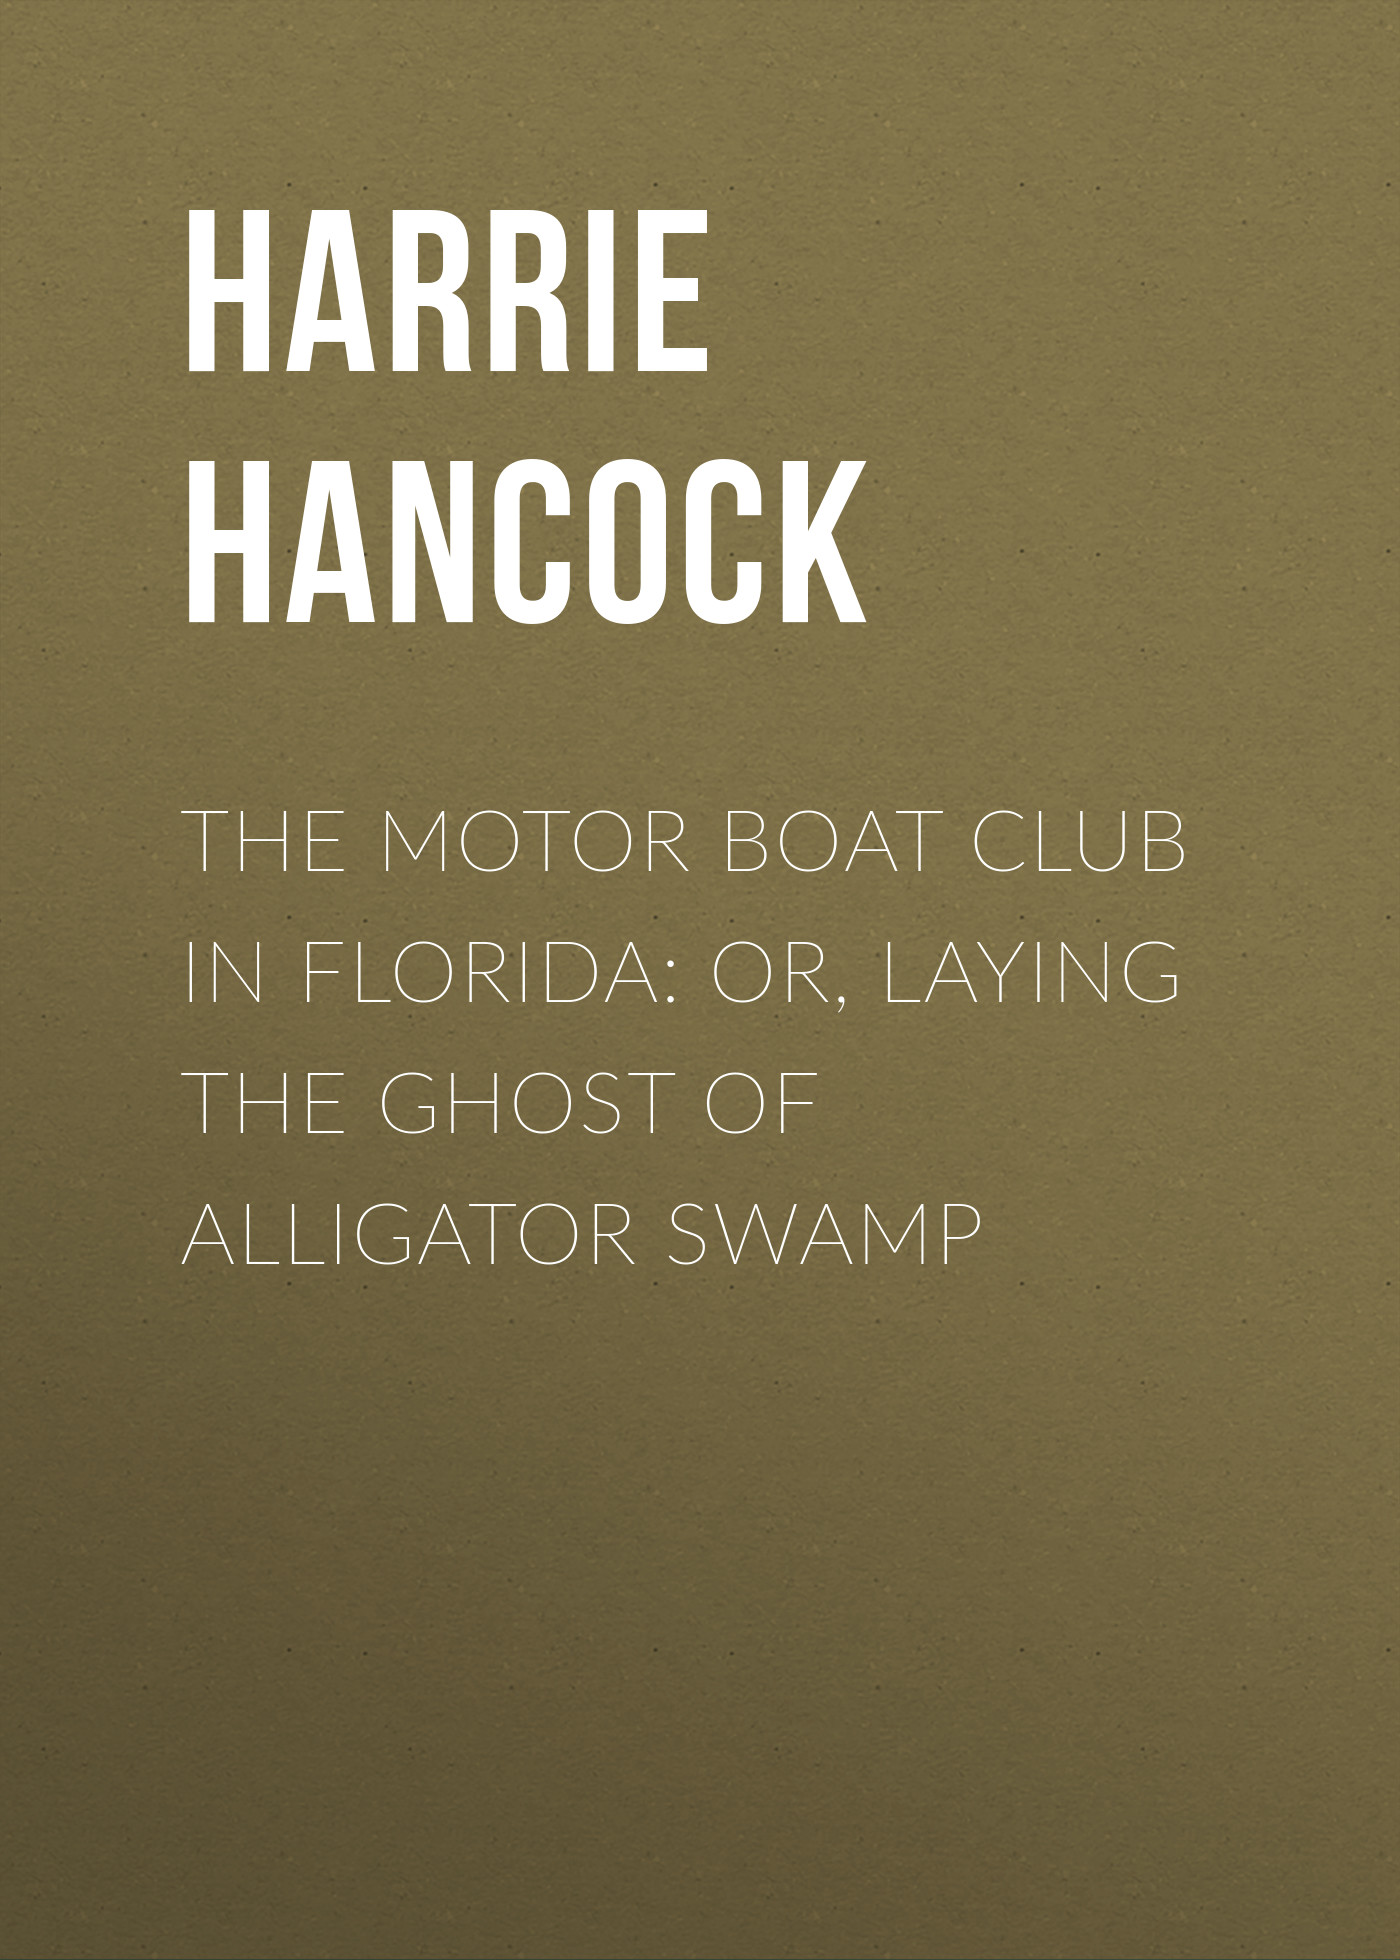 Hancock Harrie Irving The Motor Boat Club in Florida: or, Laying the Ghost of Alligator Swamp